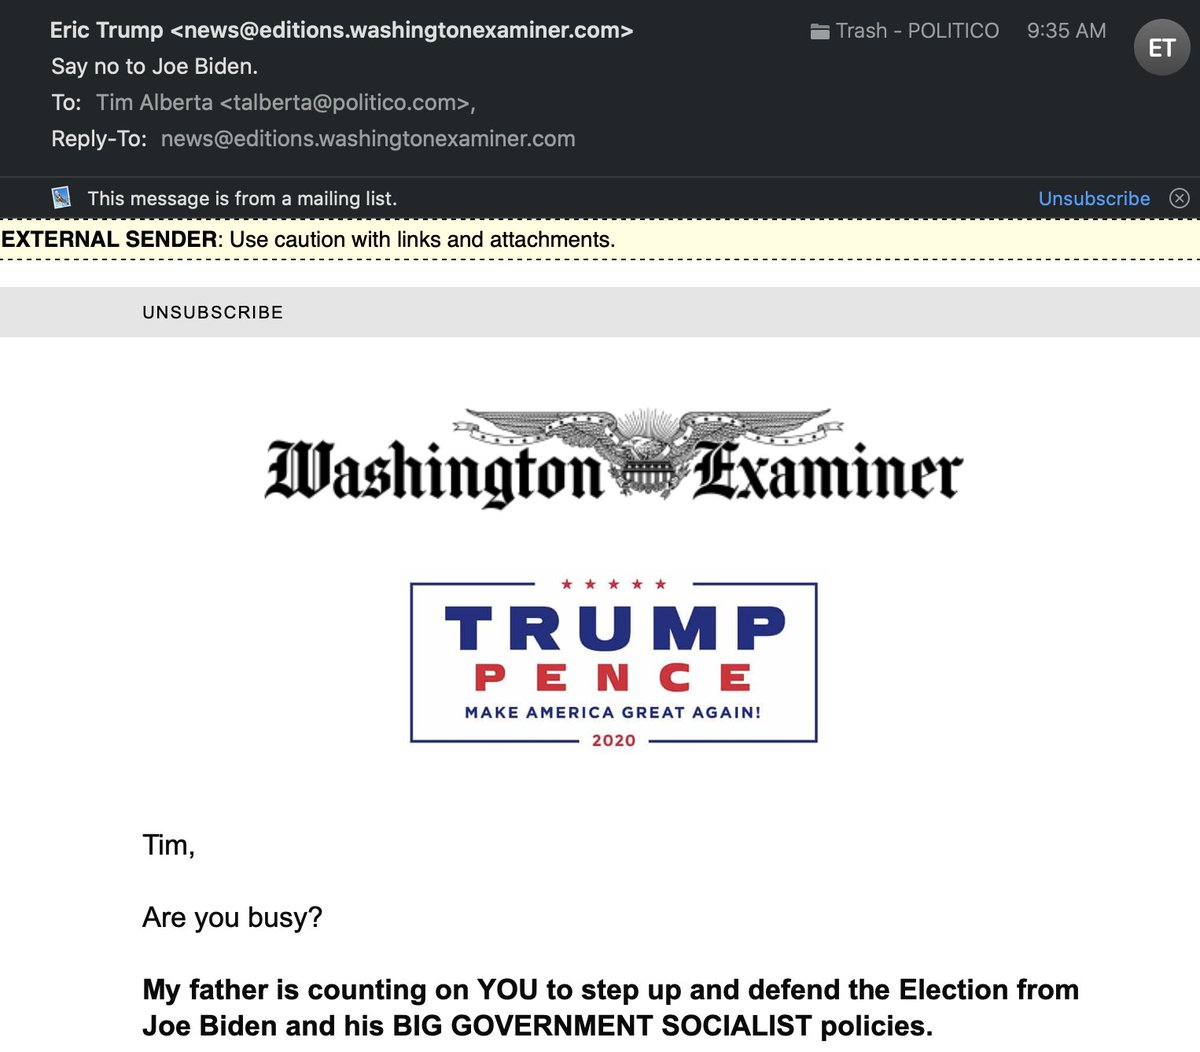 Replying to @TimAlberta: The Washington Examiner has thoughts about journalistic integrity.